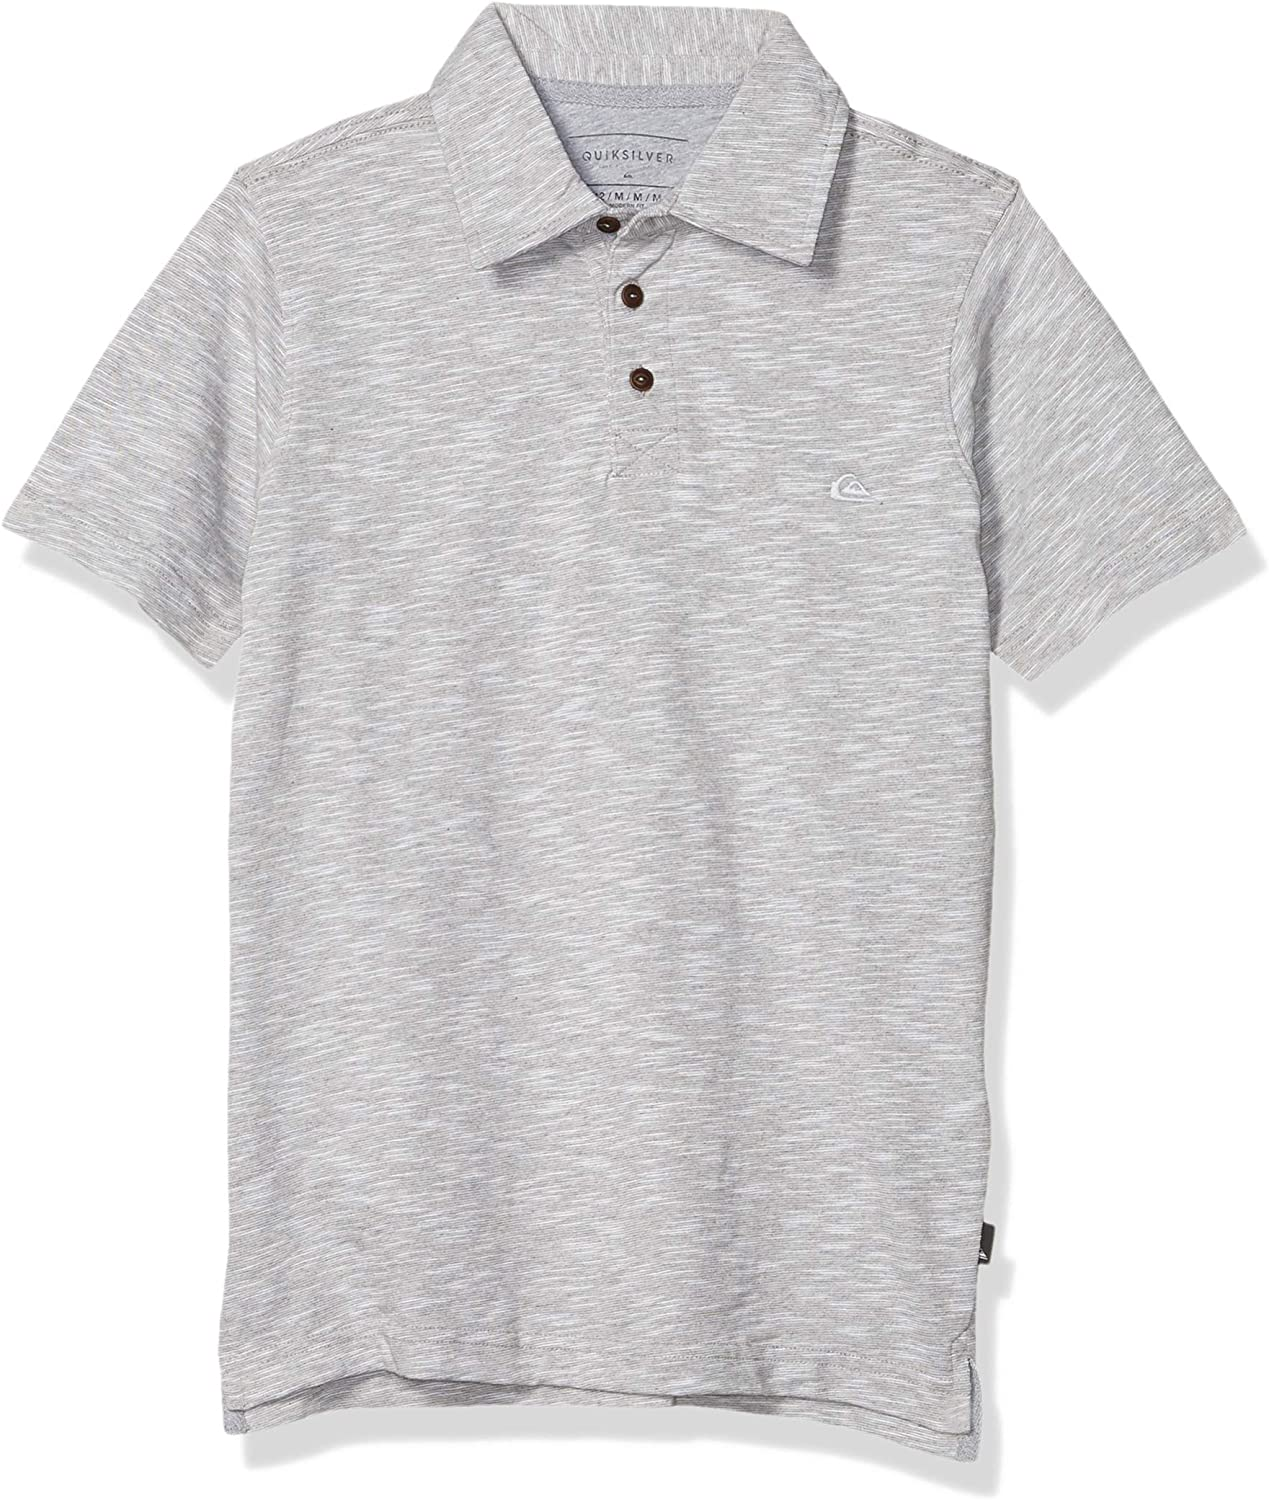 Quiksilver Boys Big Everyday Sun Cruise Youth Knit